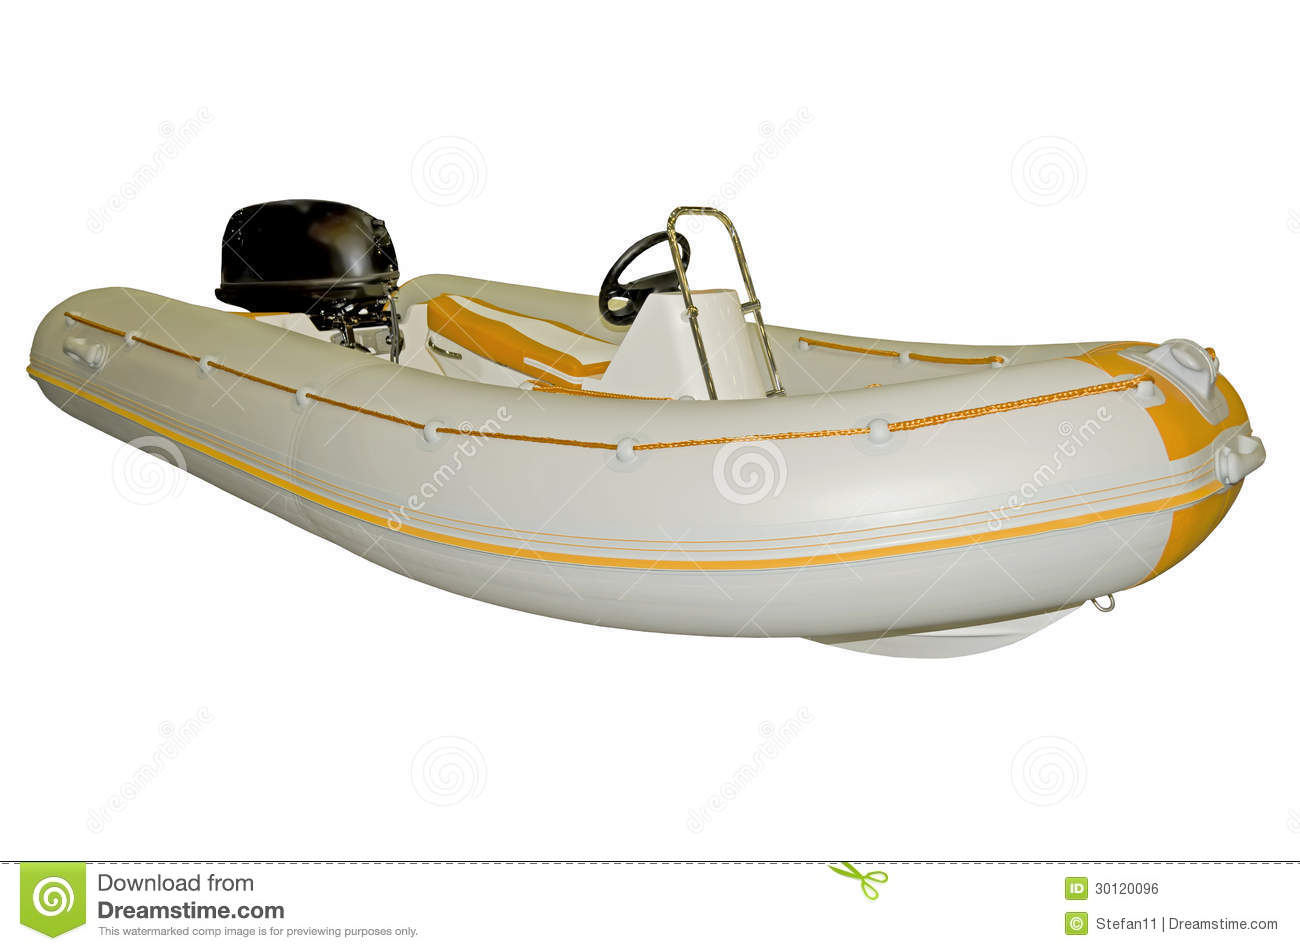 Inflatable Boat With Motor Royalty Free Stock Image - Image: 30120096